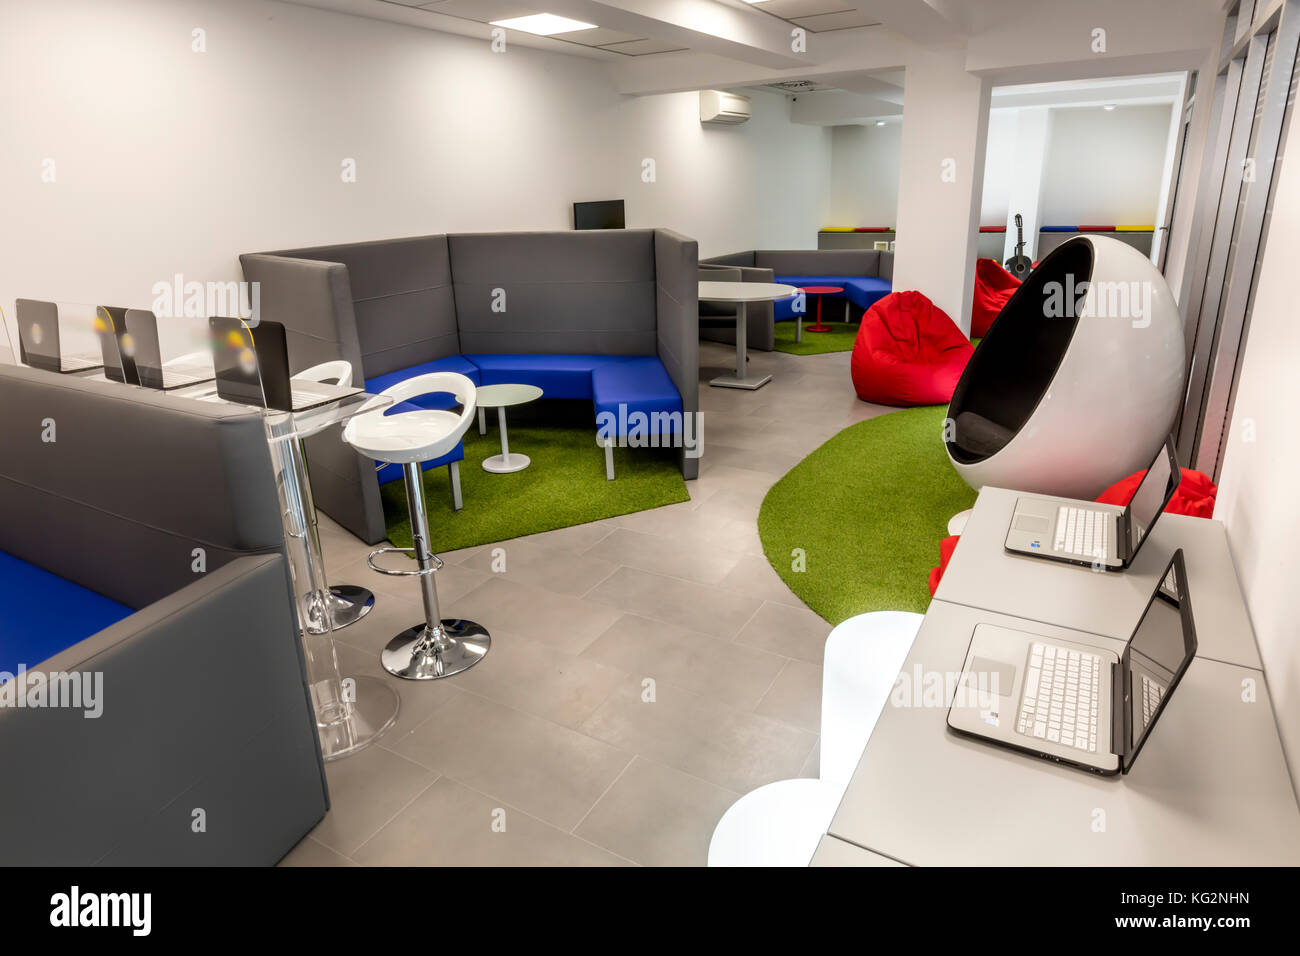 Modern Office Space With Desks And Laptops; Lounge Space In The Background.